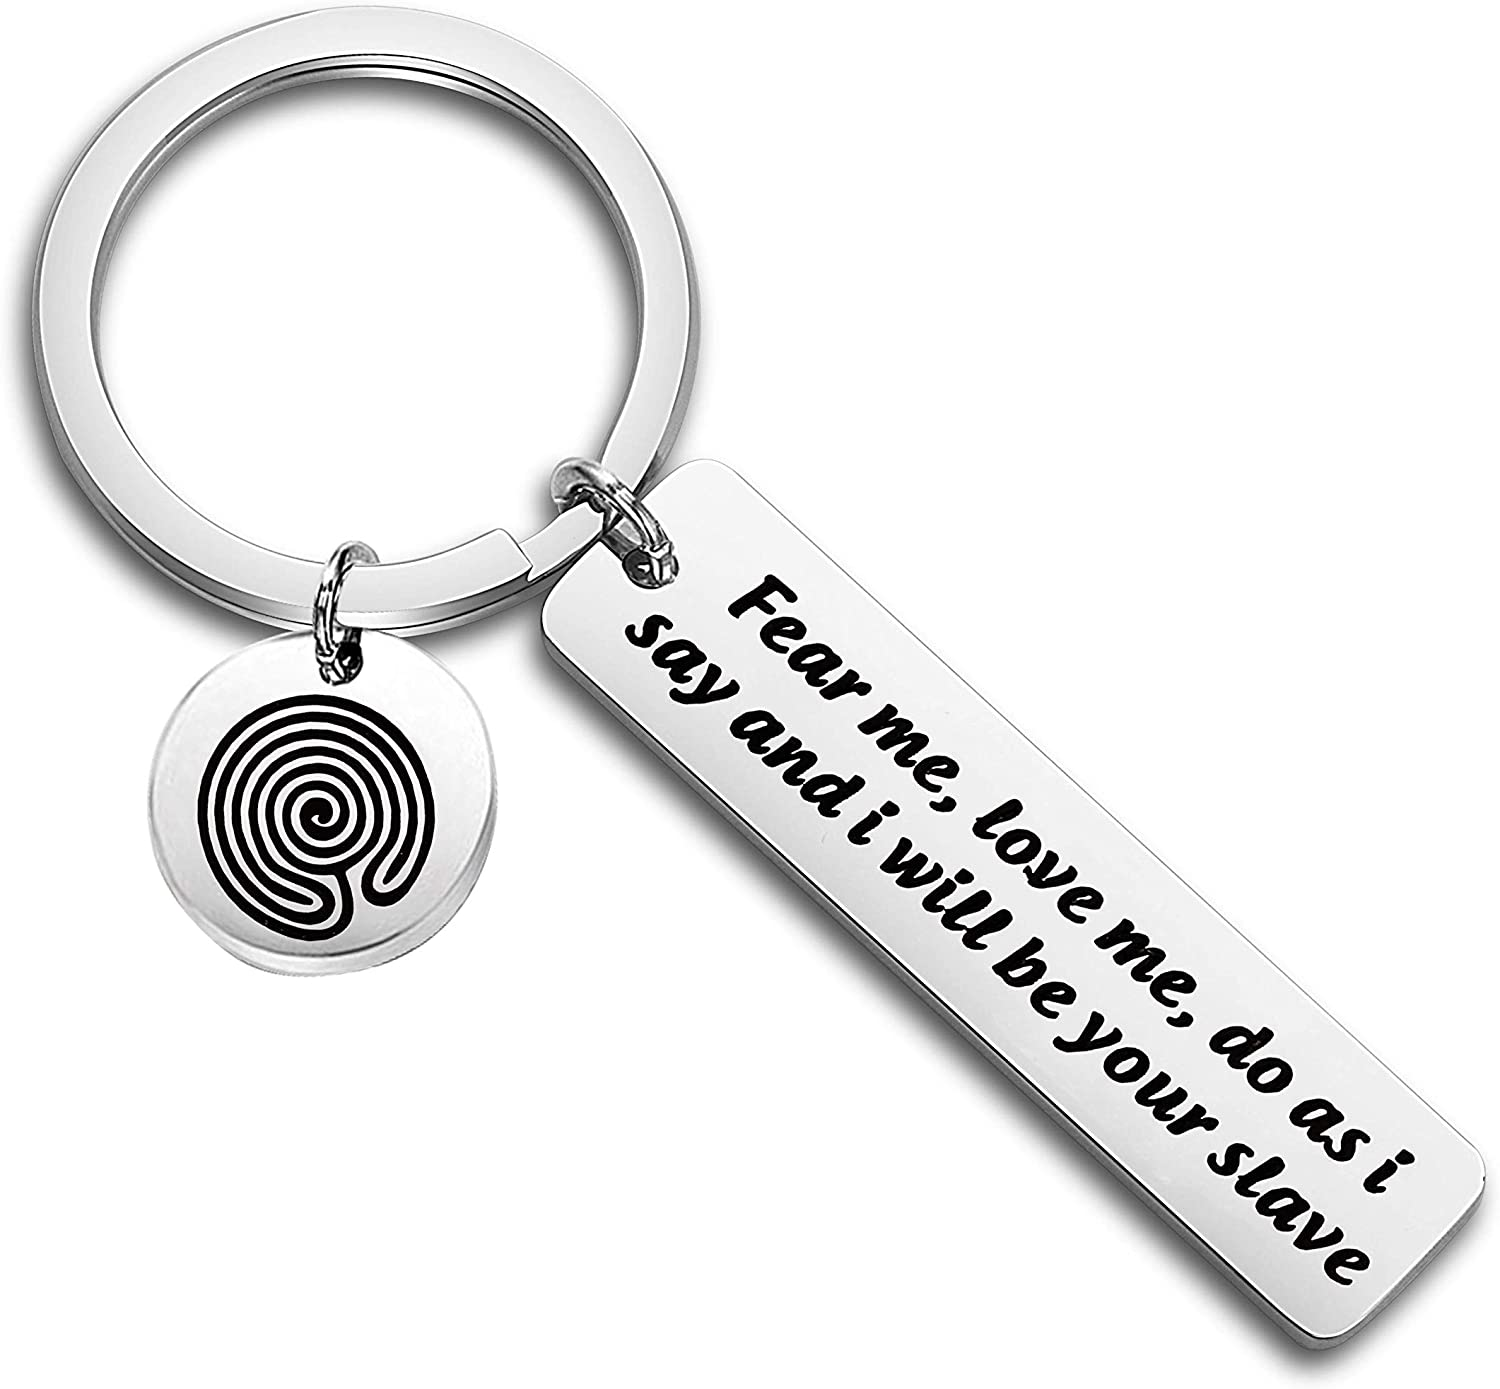 TIIMG David Bowie Lyrics Labyrinth Movie Inspired Gift Fear Me Love Me Do As I Say and I Will Be Your Slave Keychain Gift for Boyfriend Husband Girlfriend